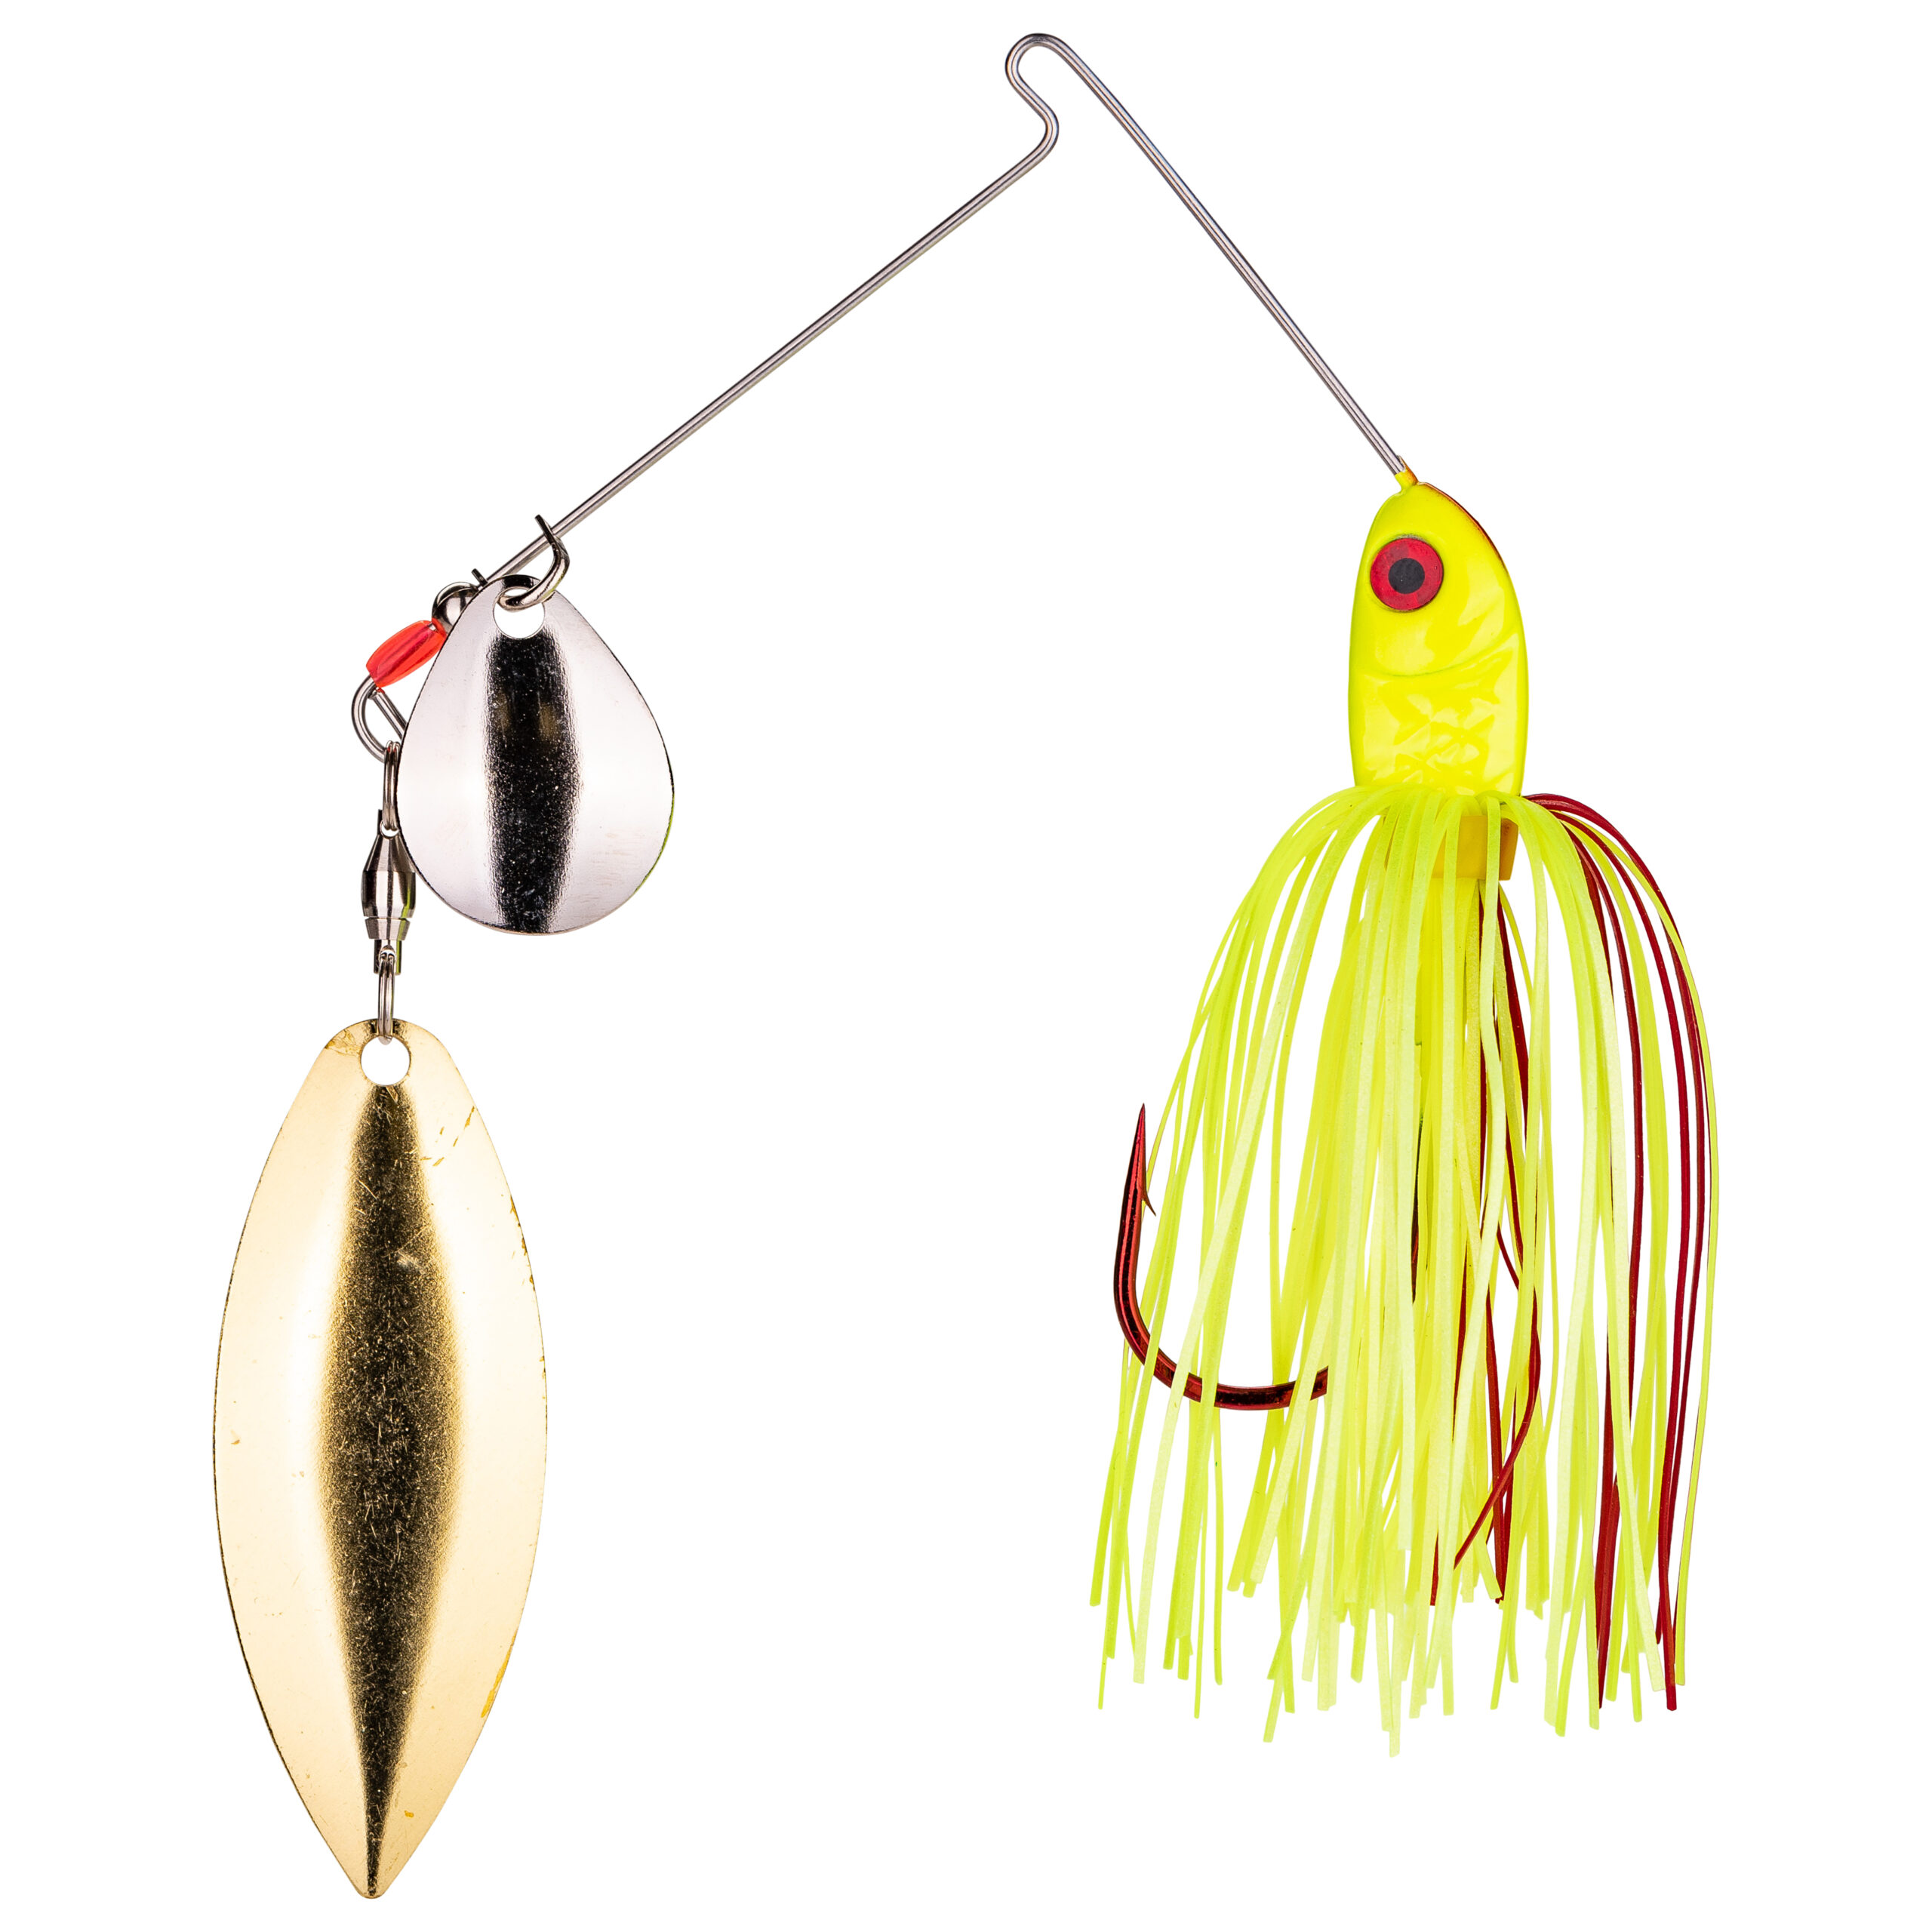 Strike King Lures – Spinnerbaits – Colorado Willow - 3/8oz - BB38CW-301SG - Chartreuse